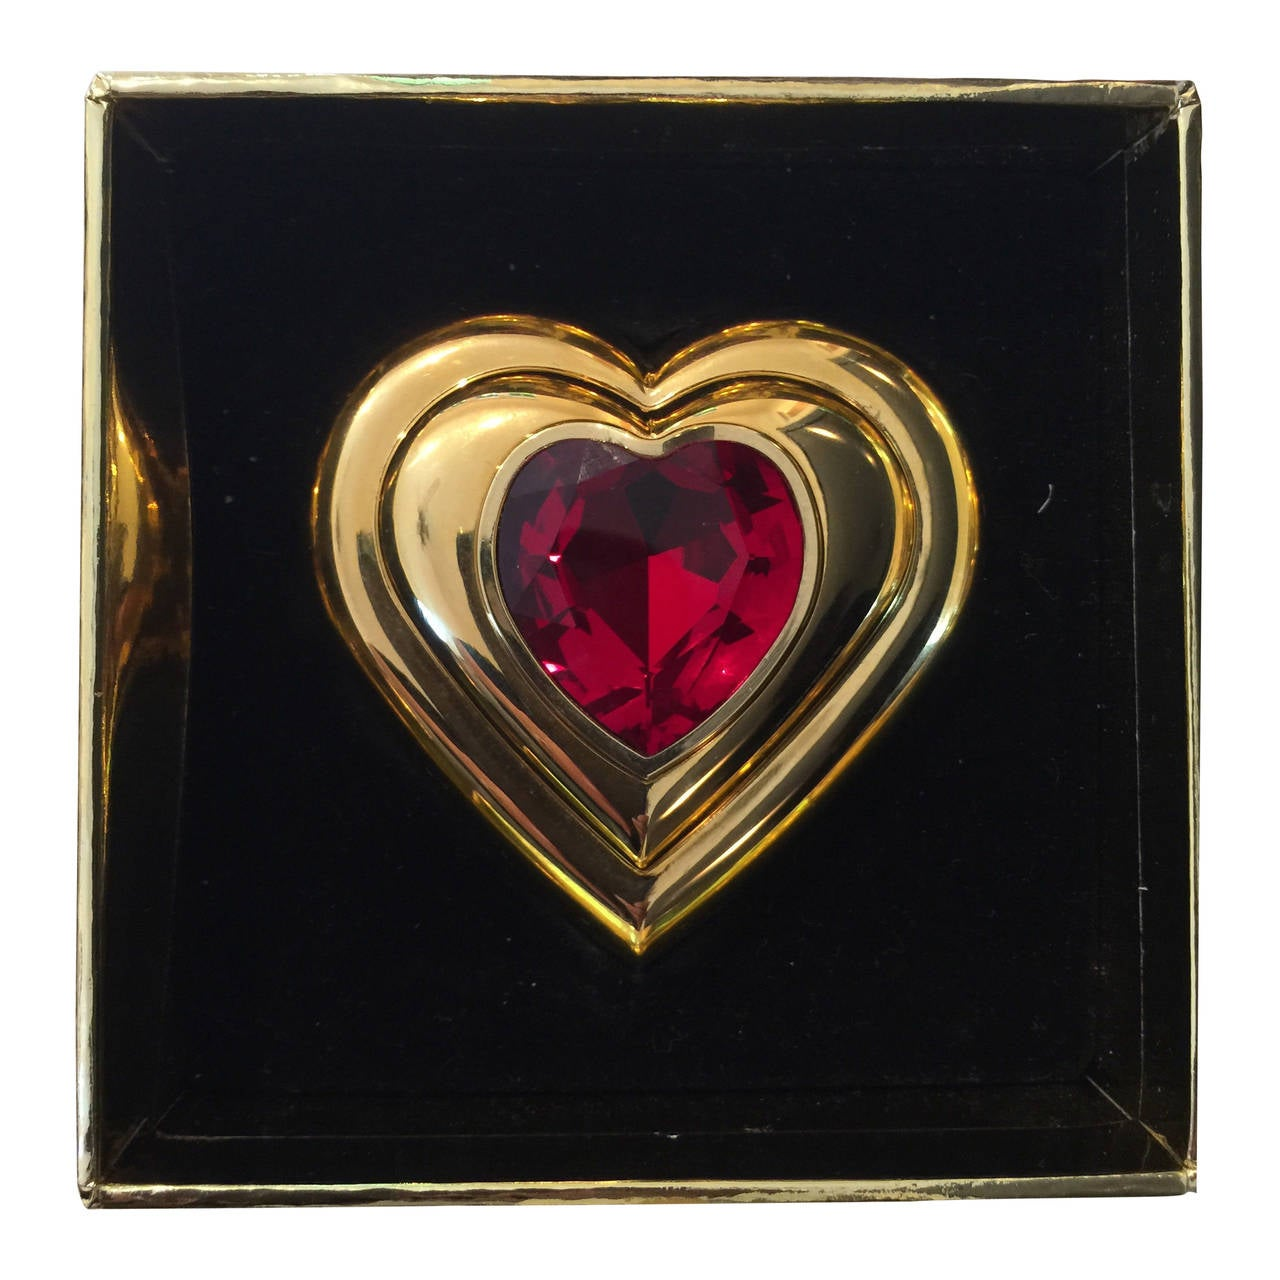 882cc14903b Yves Saint Laurent Paris Dazzling Ruby Crystal Jewel Heart Compact YSL New  For Sale